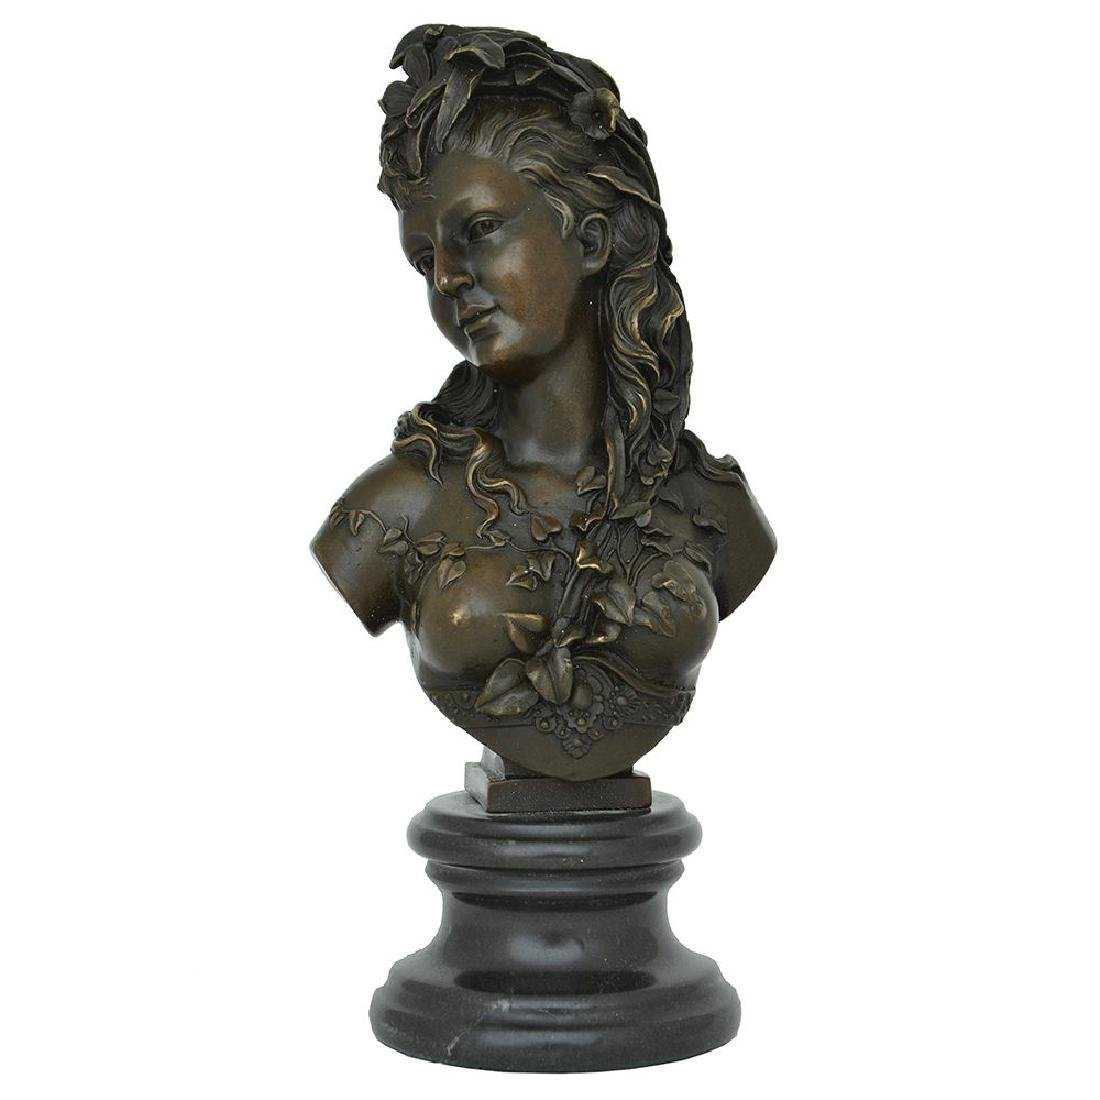 A FEMALE BRONZE SEMI-NUDE BUST ADORNED WITH IVY LEAVES